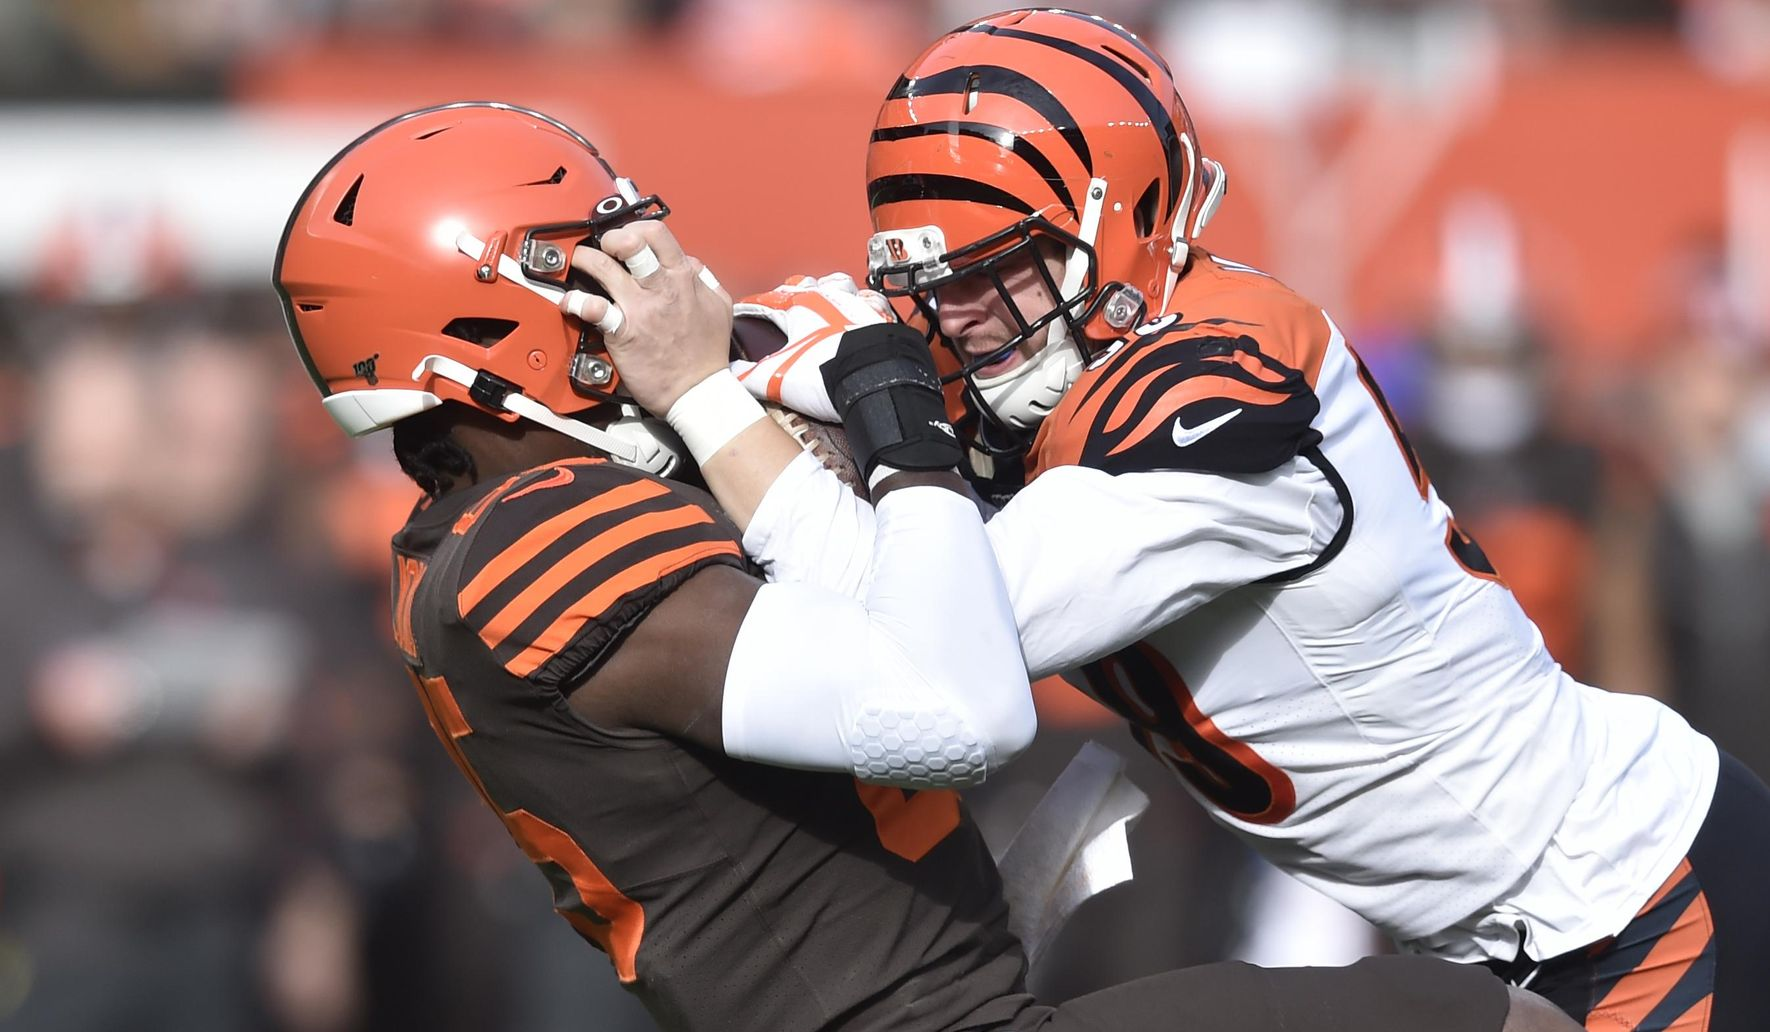 Bengals_browns_football_89971_c0-113-2694-1683_s1770x1032